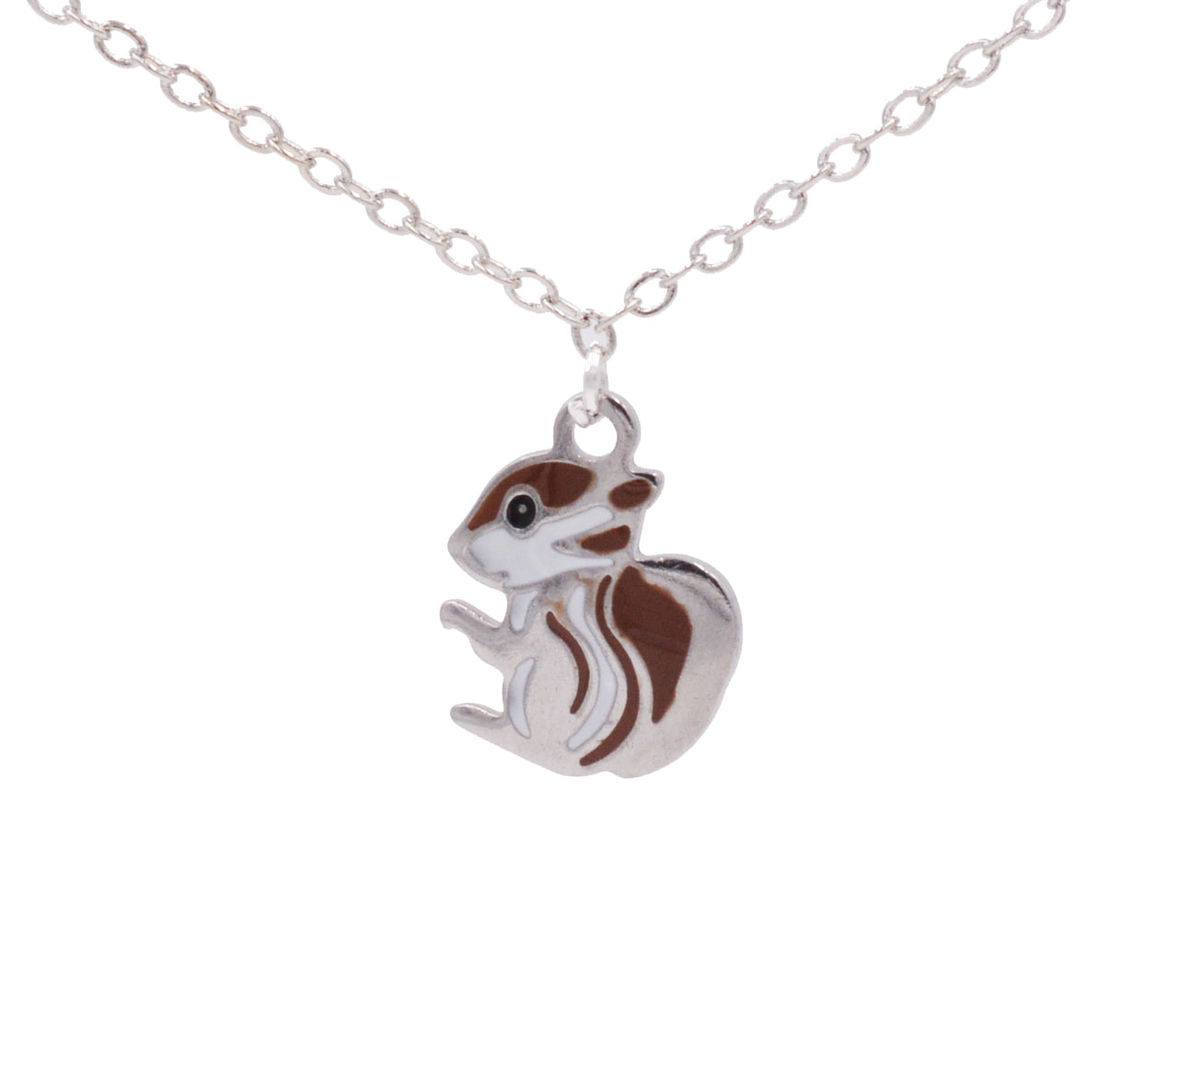 Silver plated tiny little squirrel pendant necklace 18 cute and silver plated tiny little squirrel pendant necklace 18 cute and quirky in organza bag aloadofball Gallery